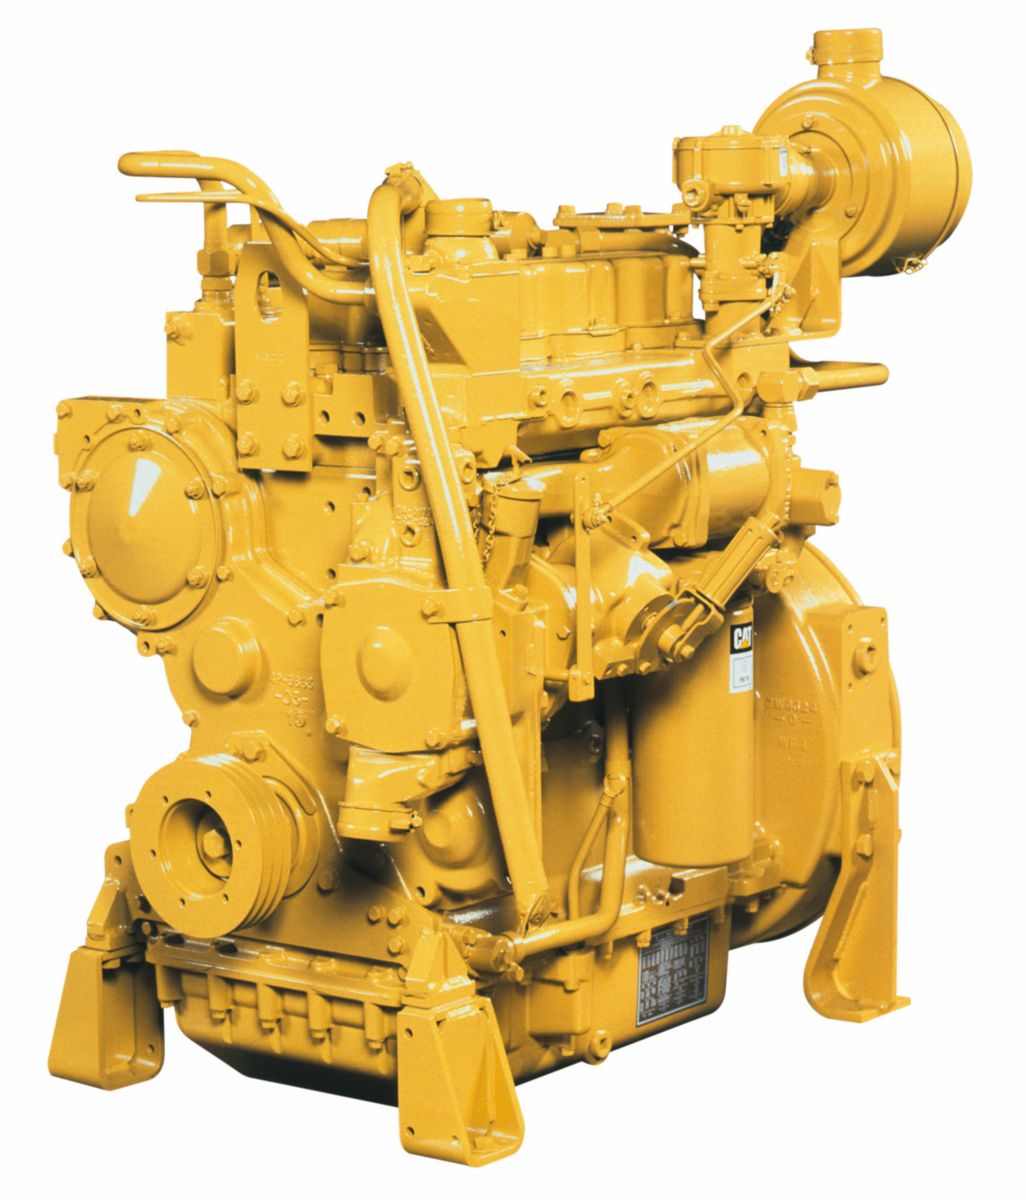 G3406 Industrial Gas Engine